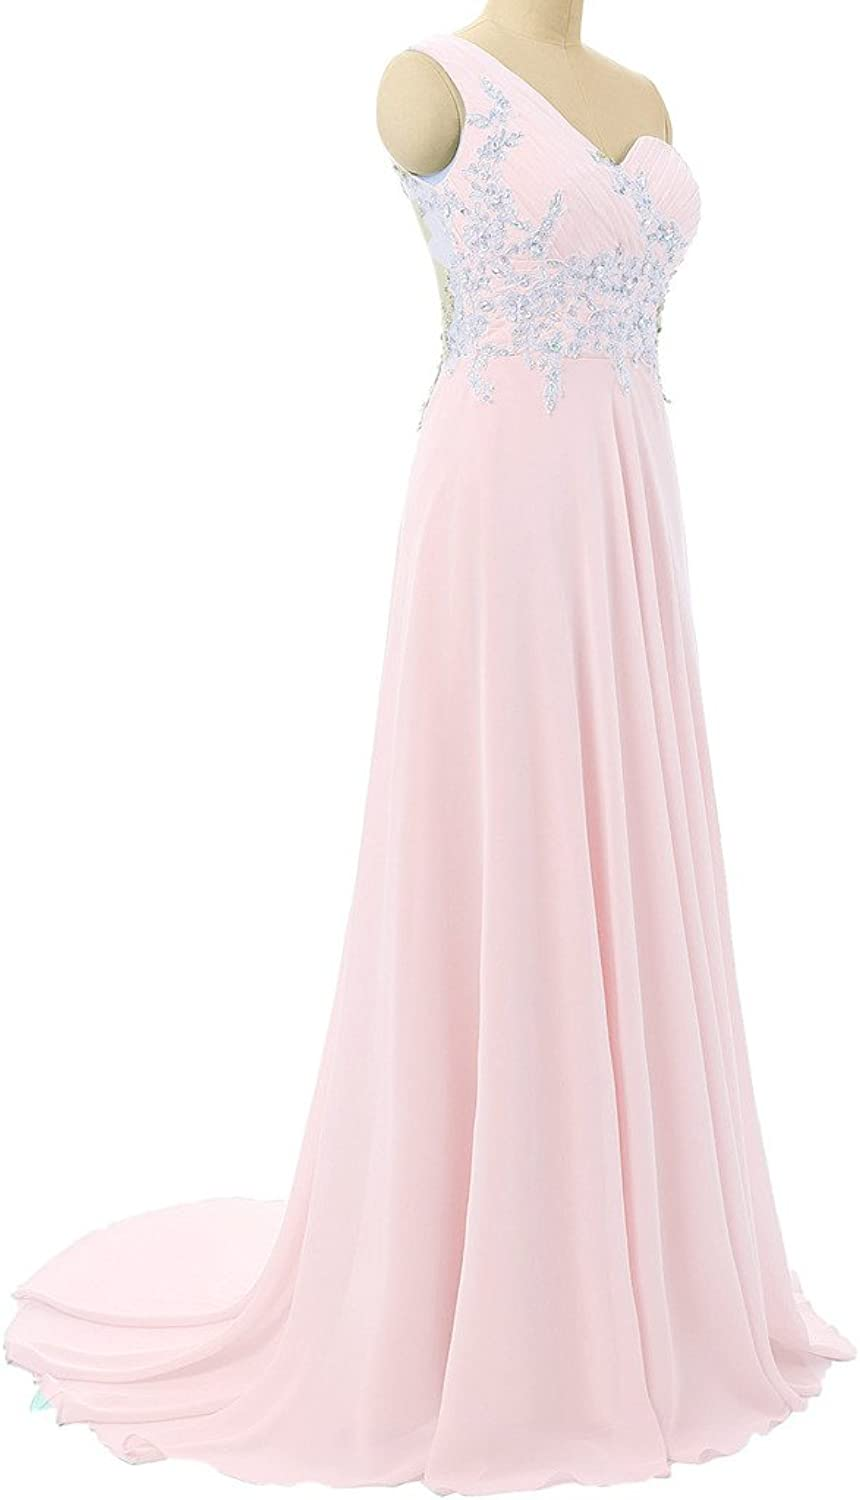 Lemai One Shoulder Sheer Back Long A Line Formal Crystals Prom Evening Dresses